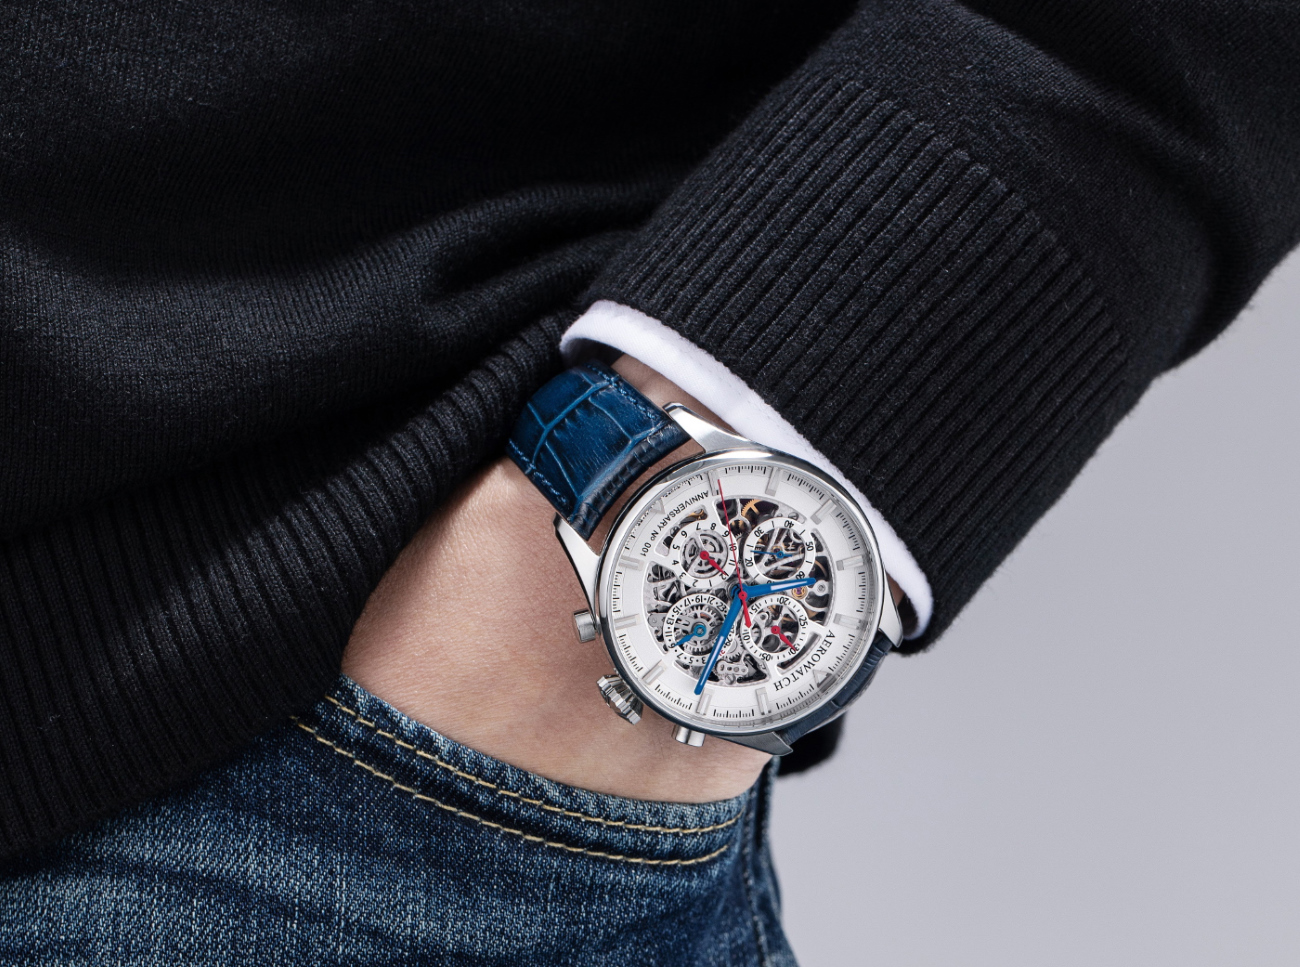 Aerowatch celebrates 110 years in style